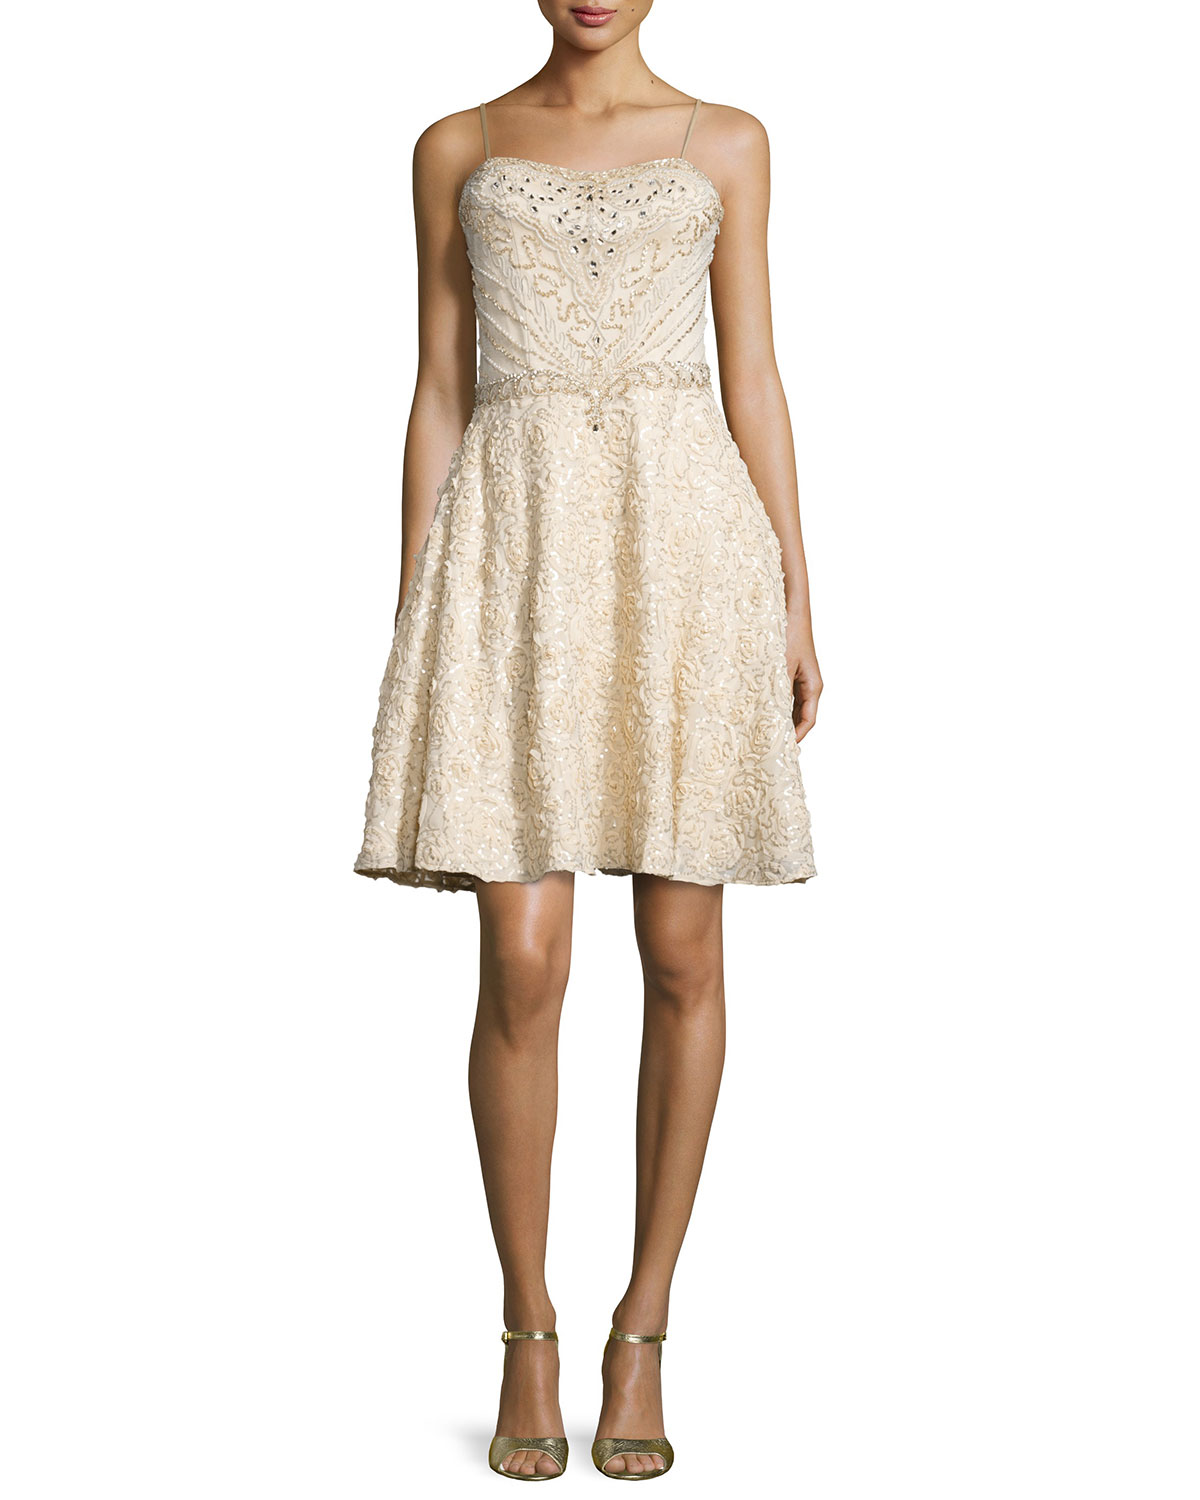 Spaghetti Strap Fit & Flare Sequined Dress